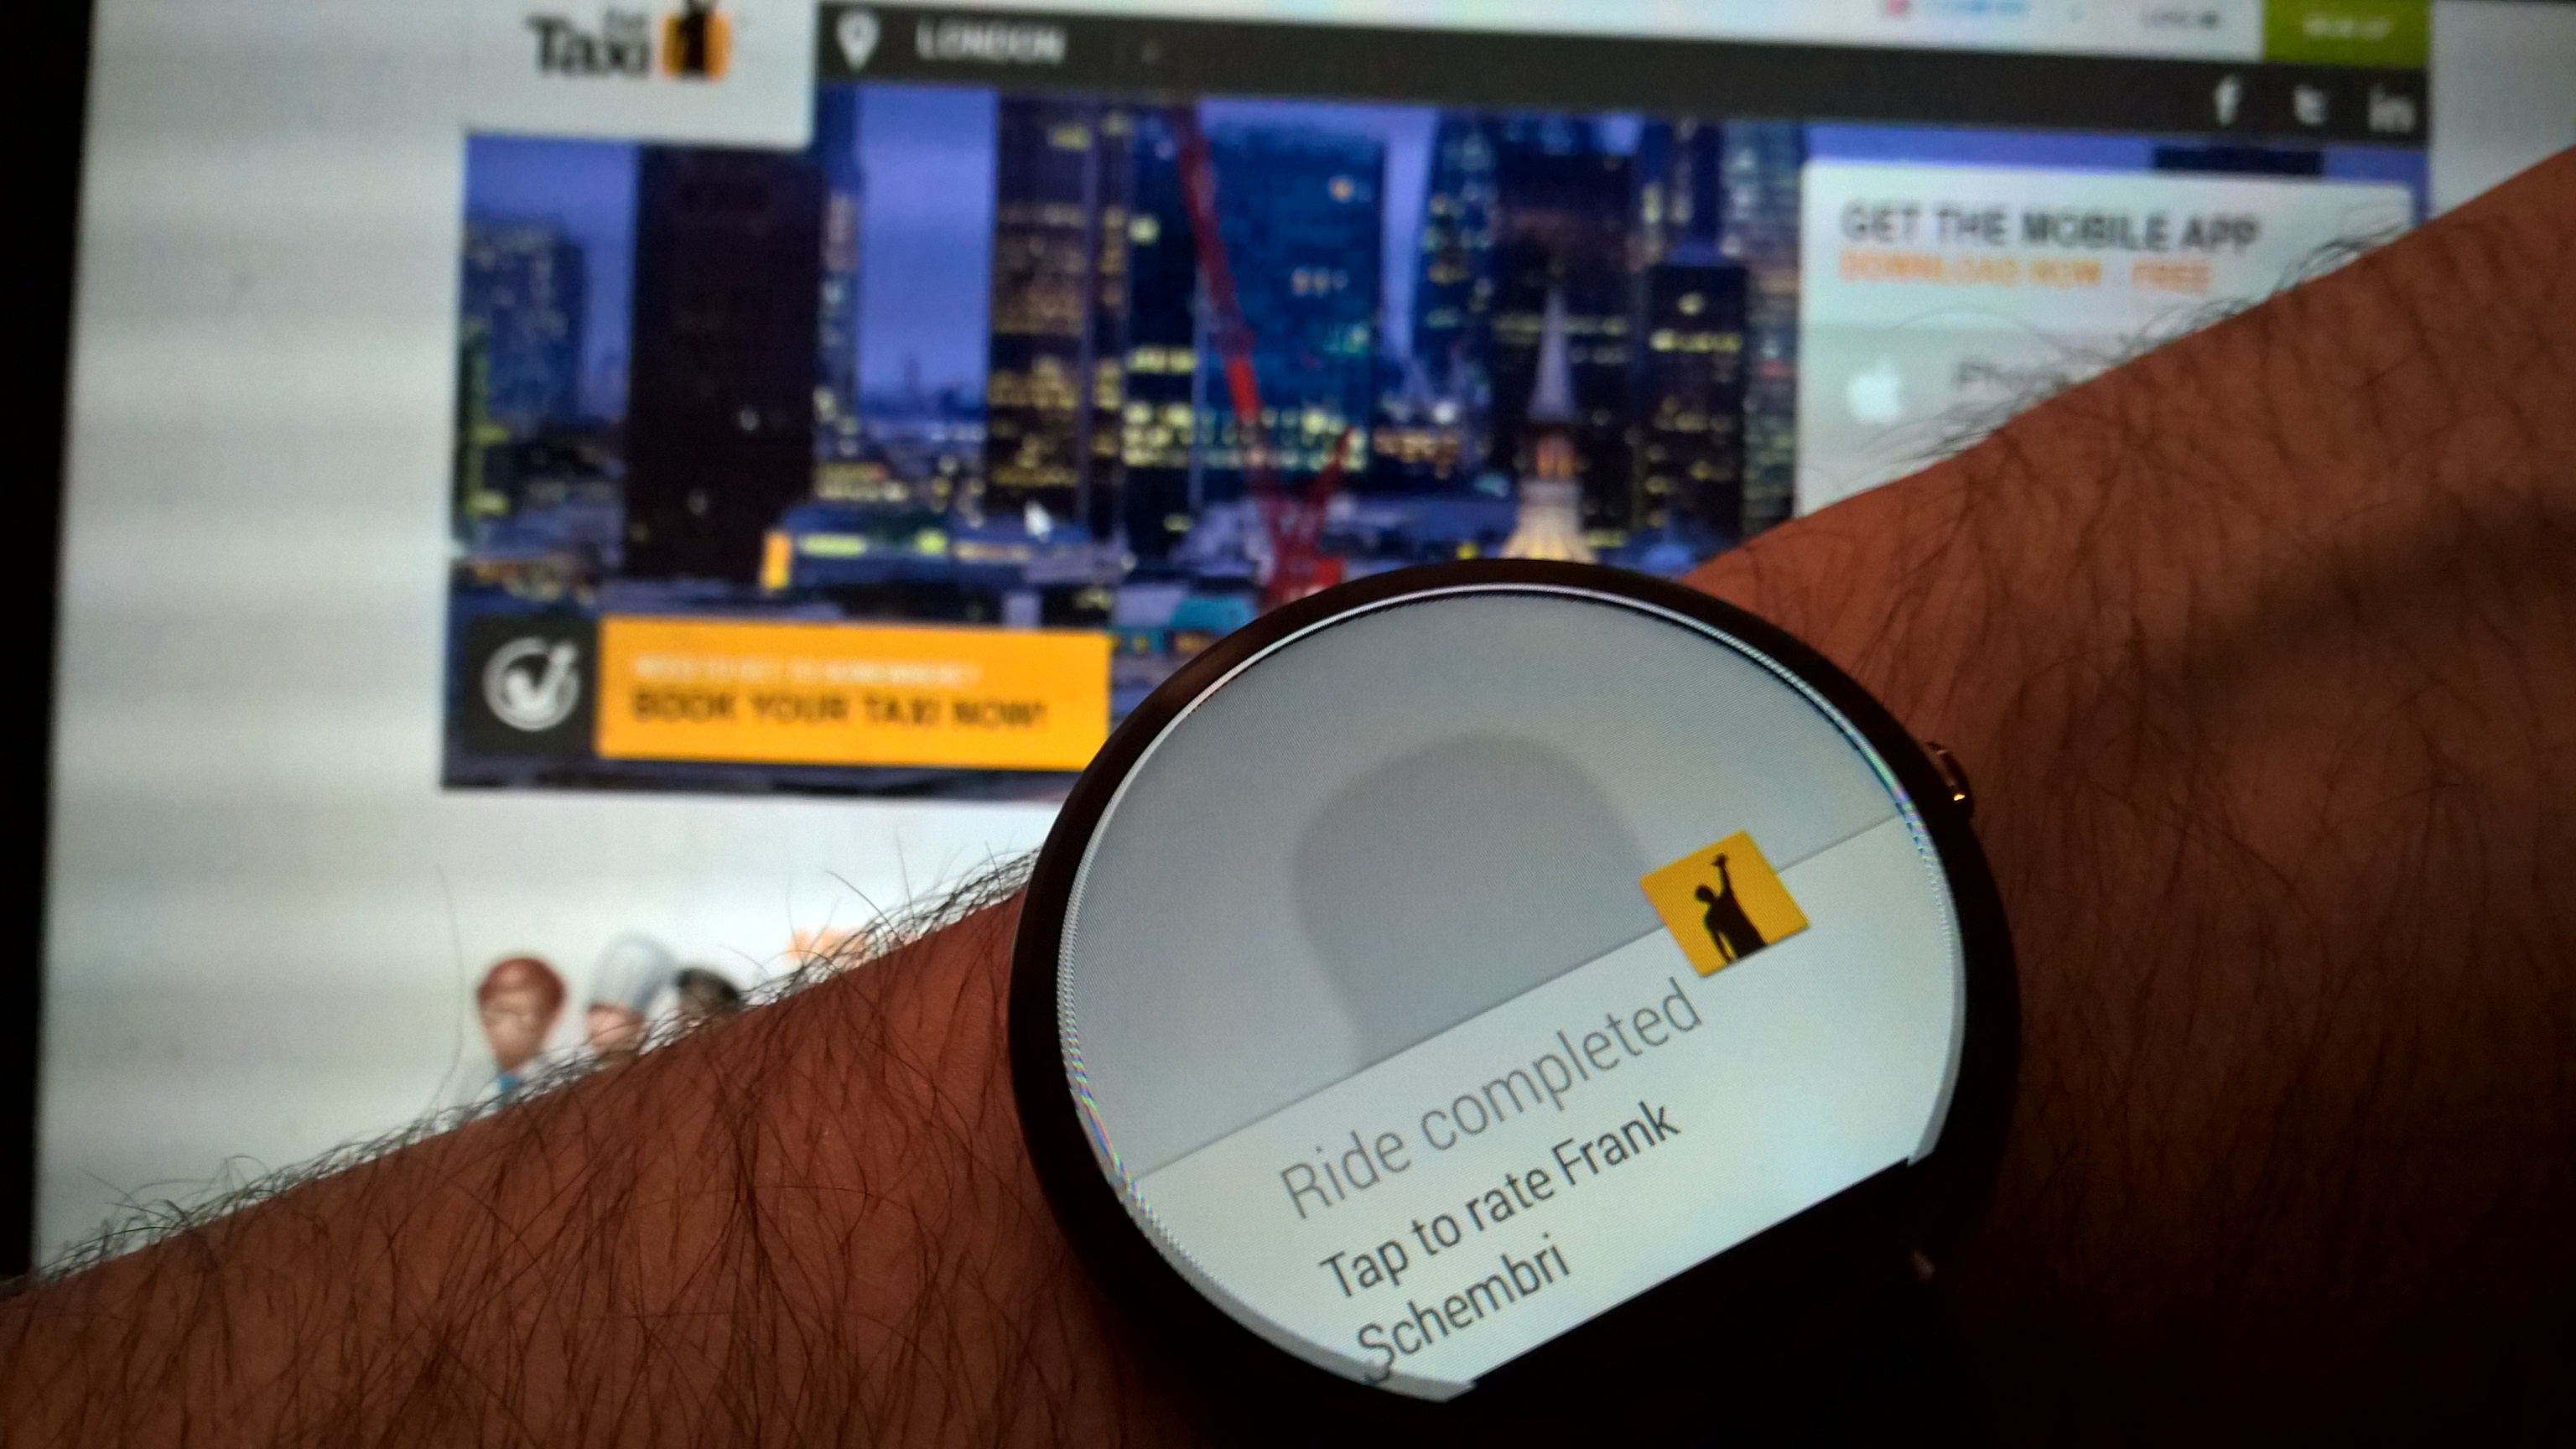 Gett Lands for Android Wear, Lets You Book Taxis From Your Wrist